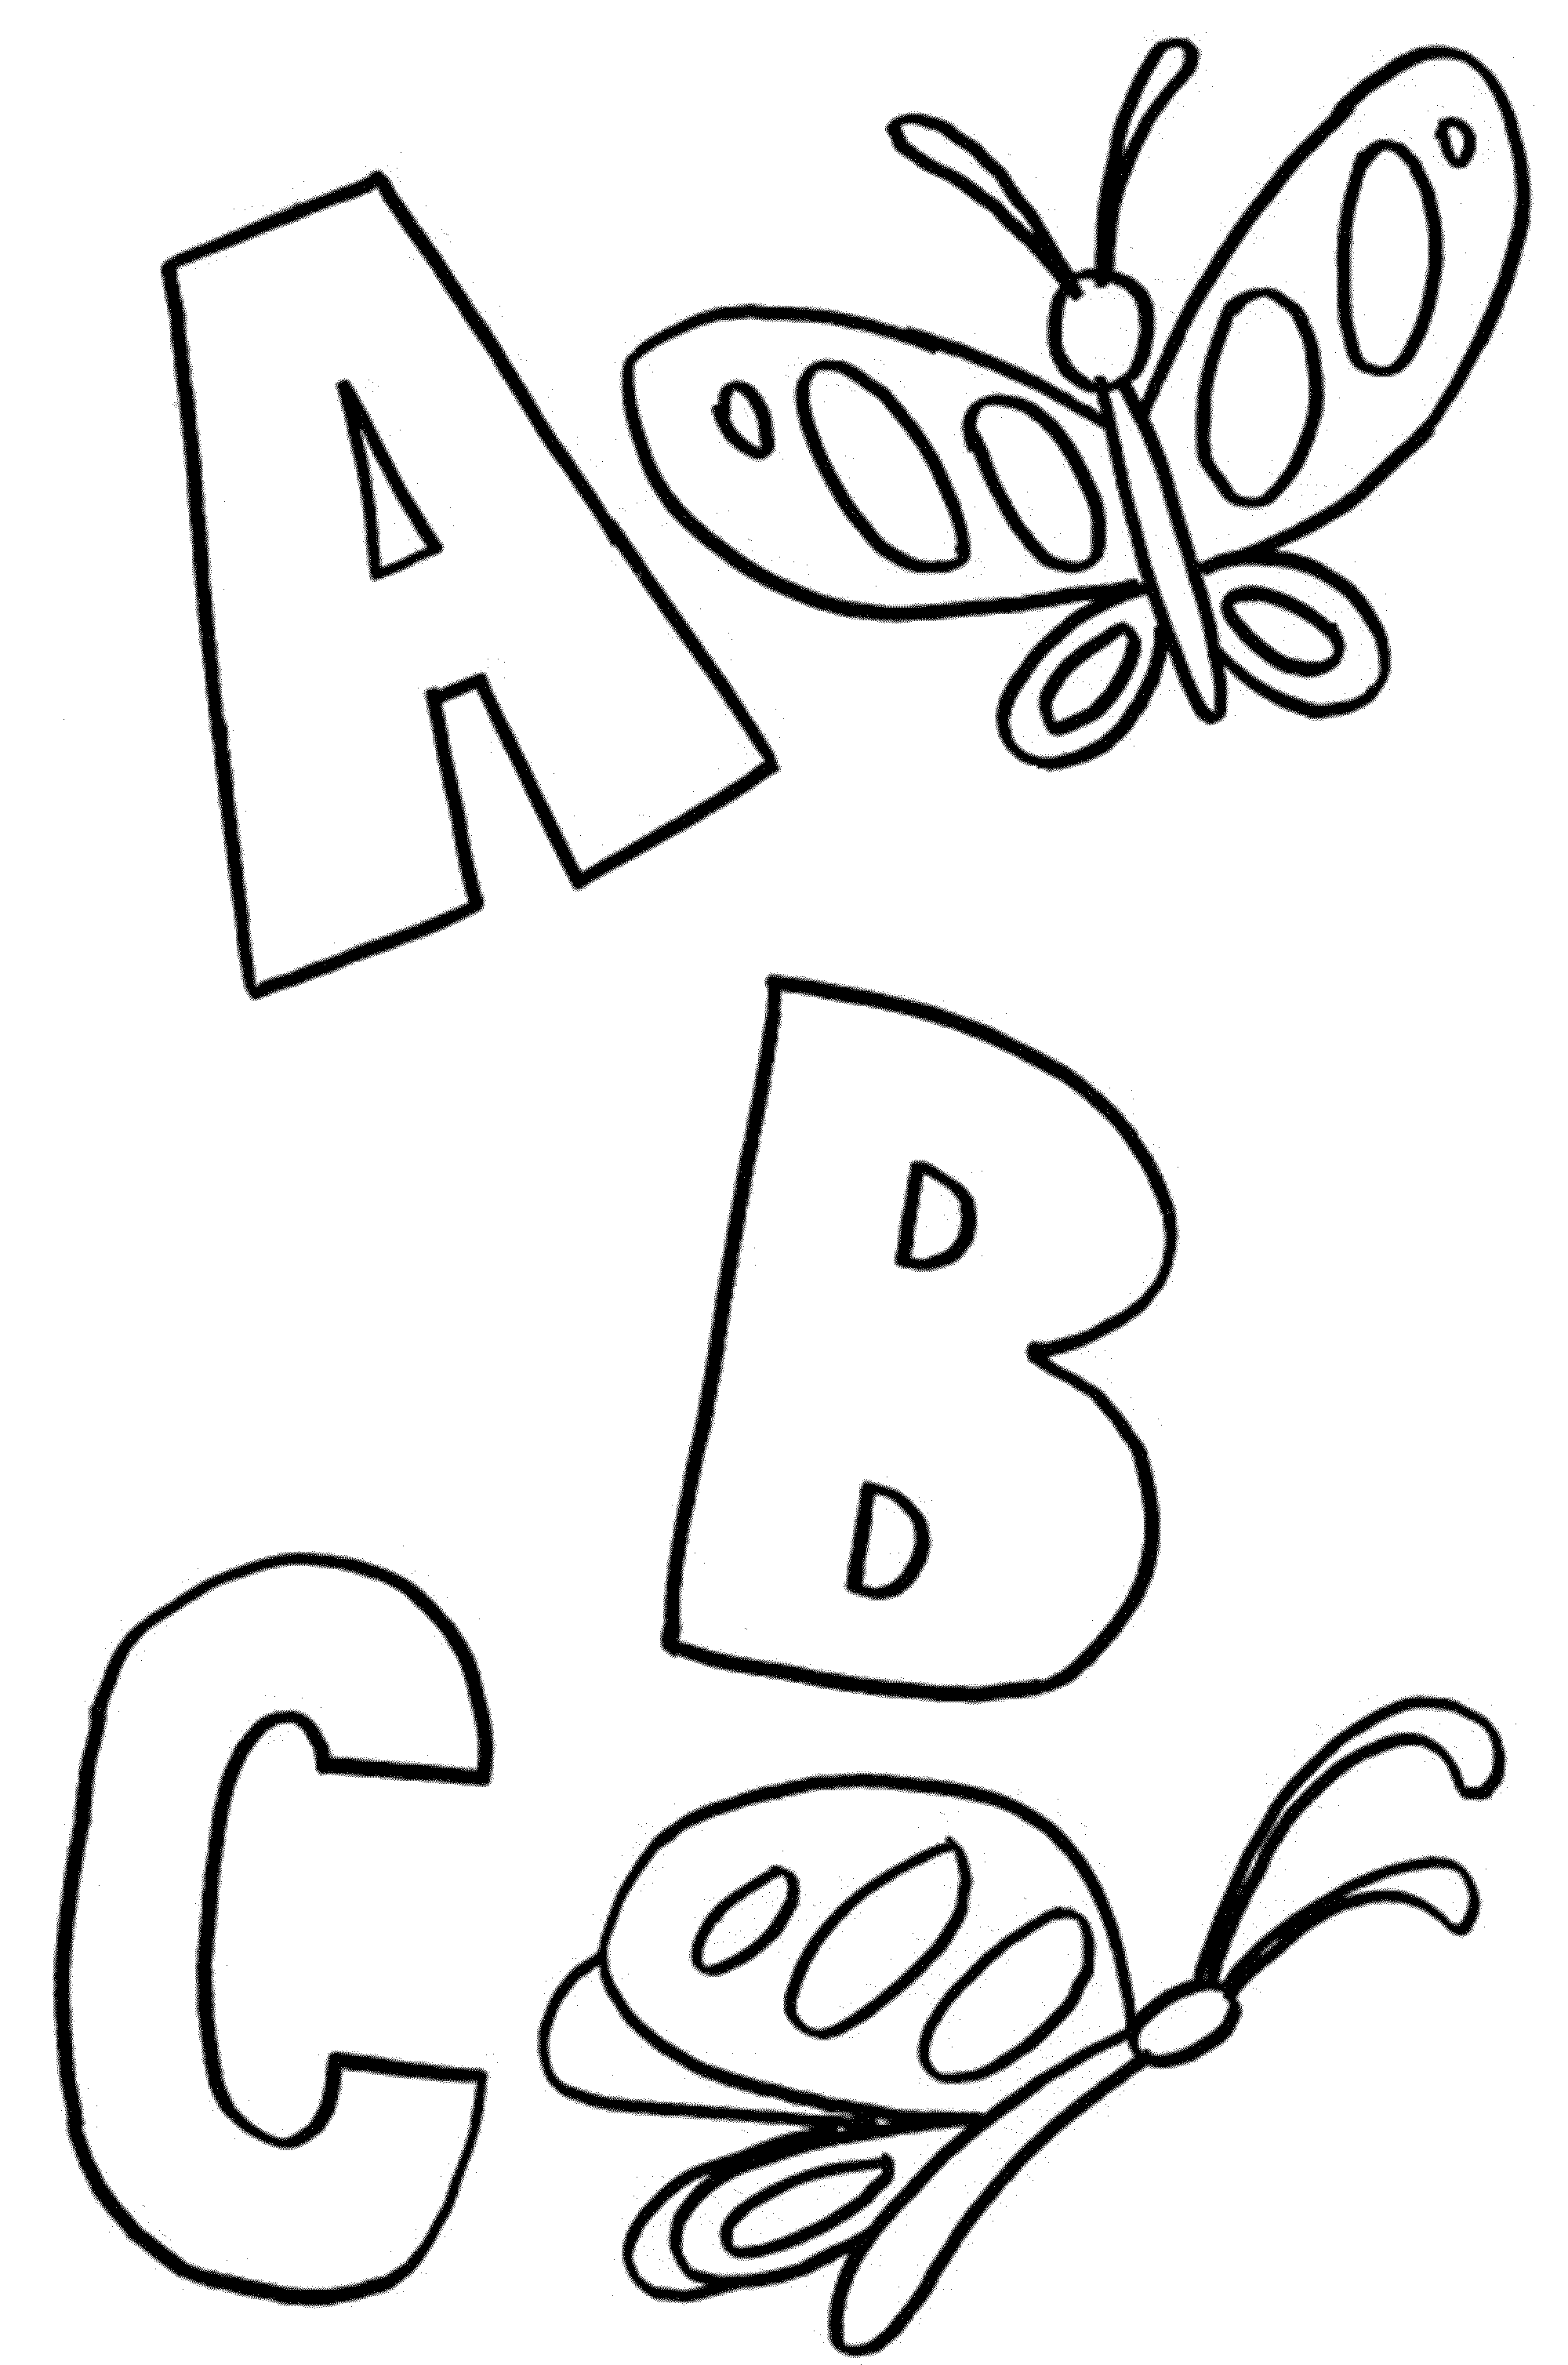 abc coloring page abc coloring pages 2 coloring pages to print page abc coloring